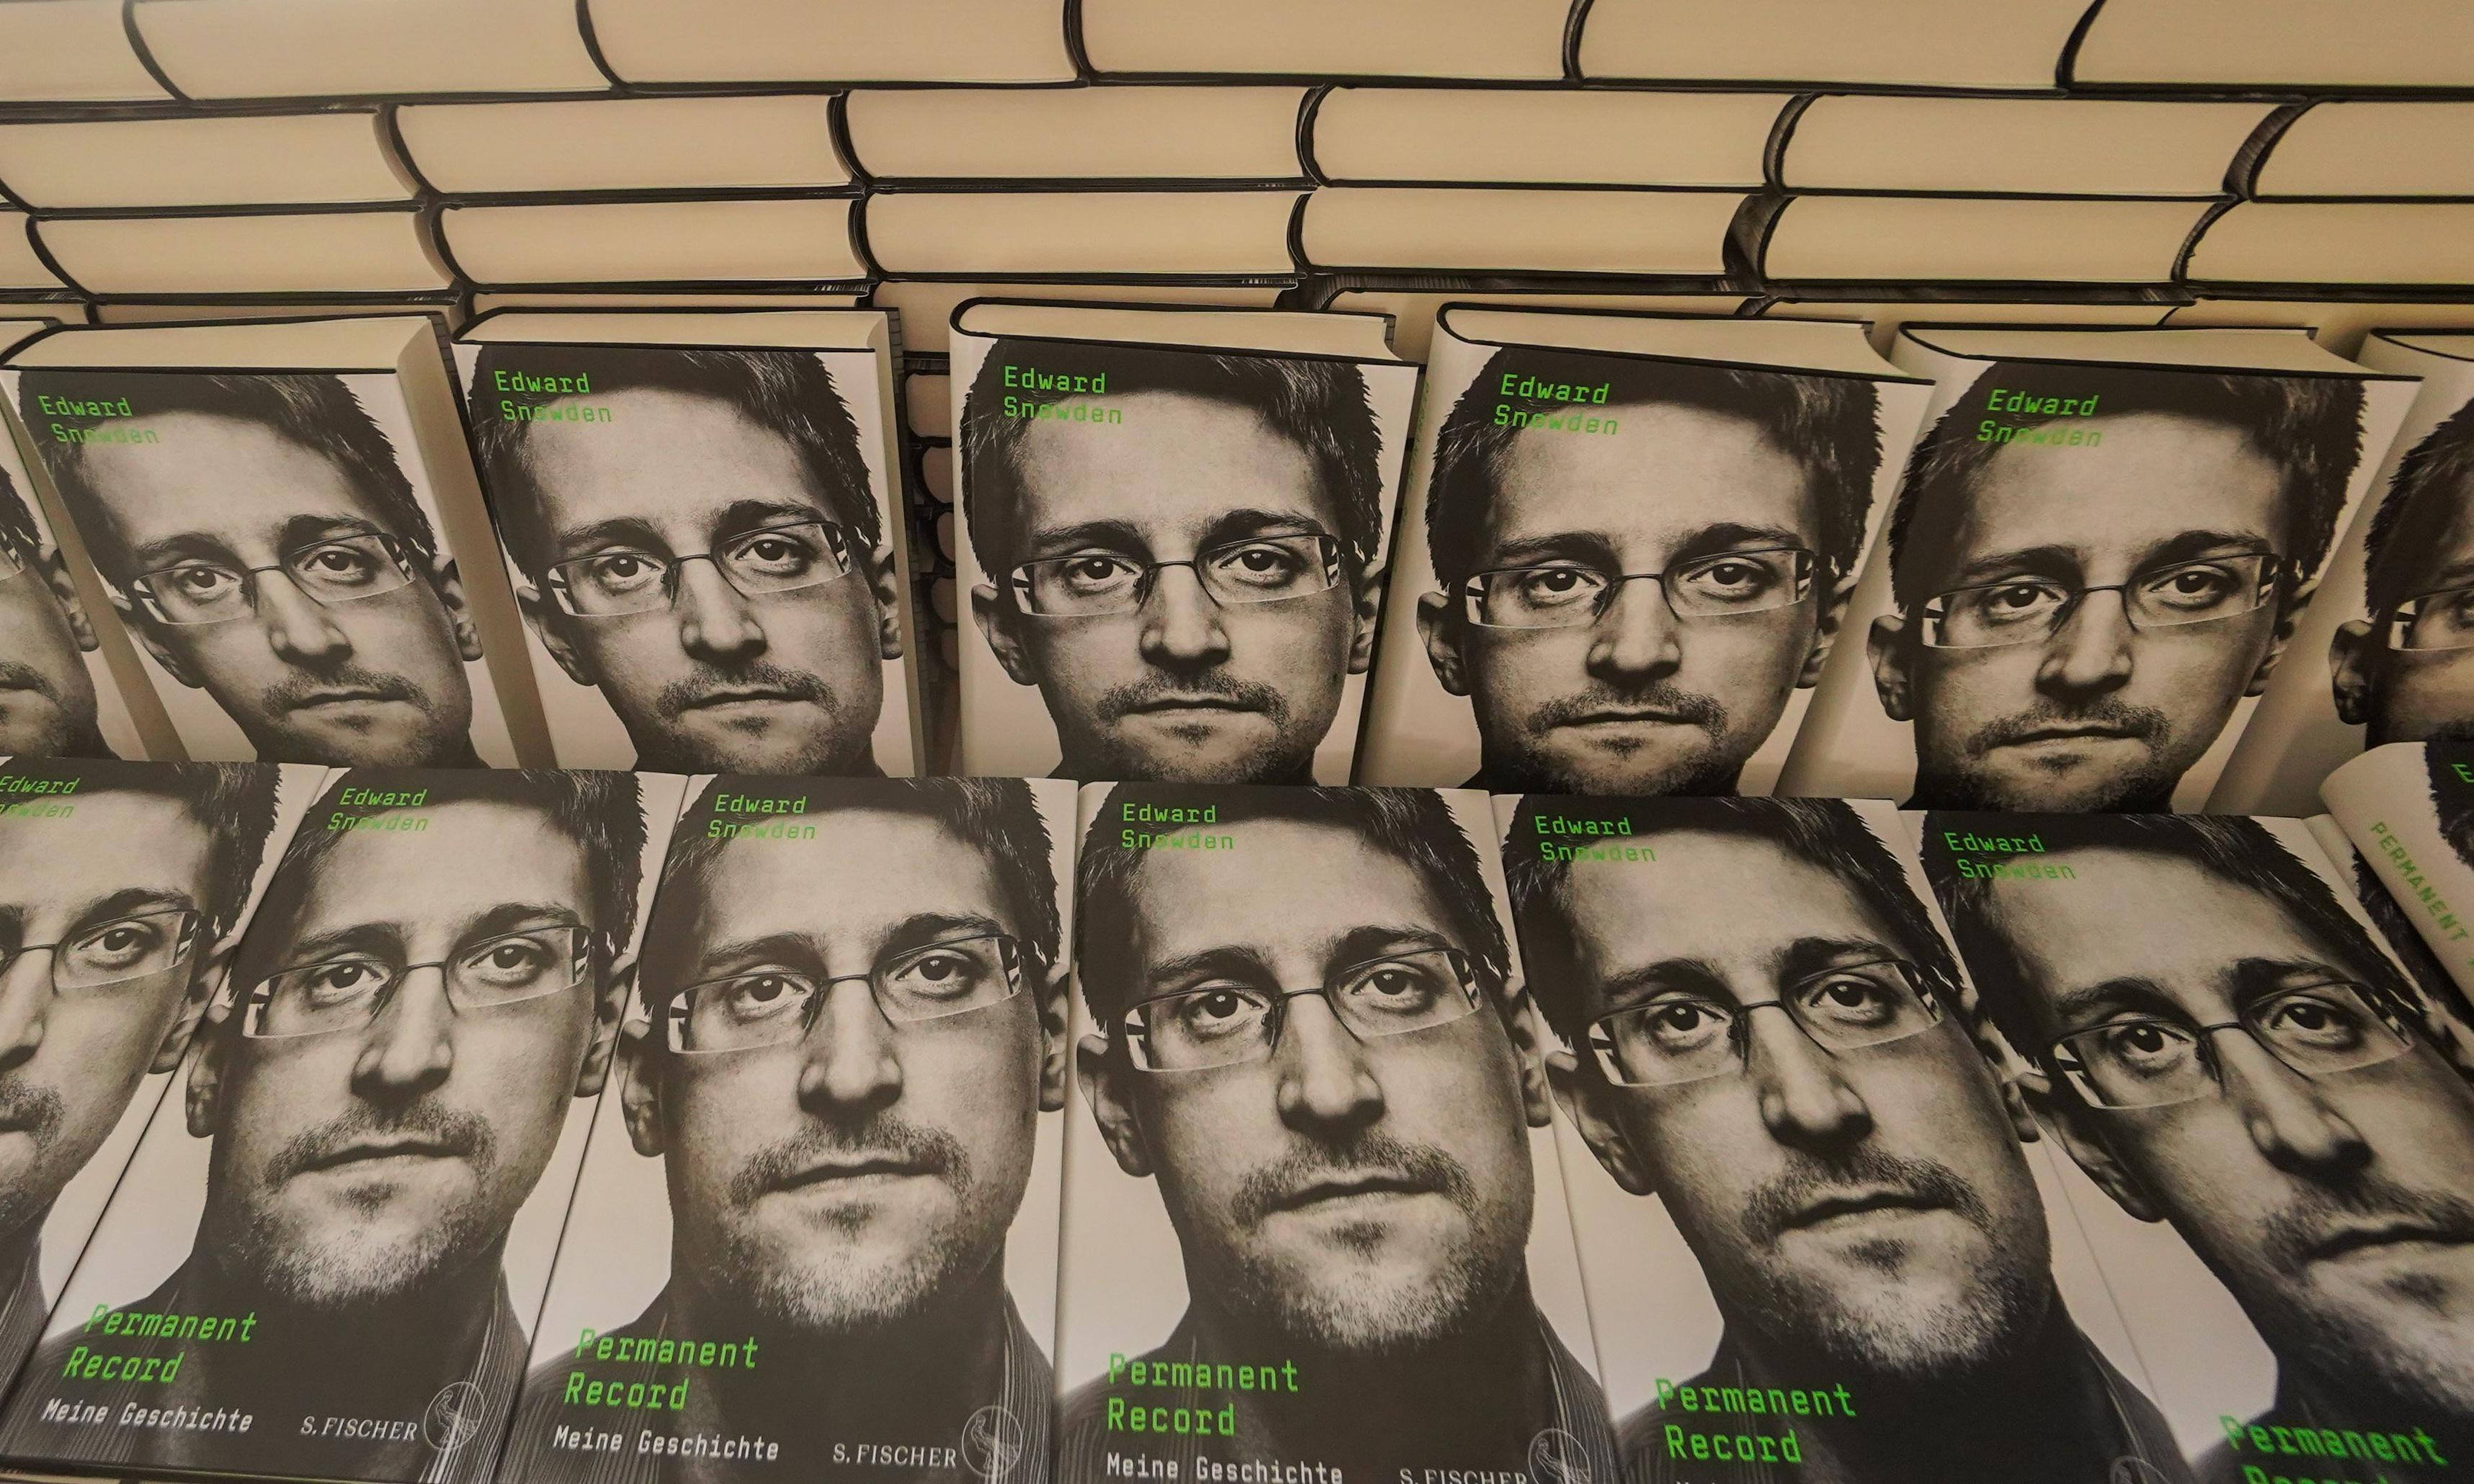 Permanent Record review: Edward Snowden writes in 50 shades of grey